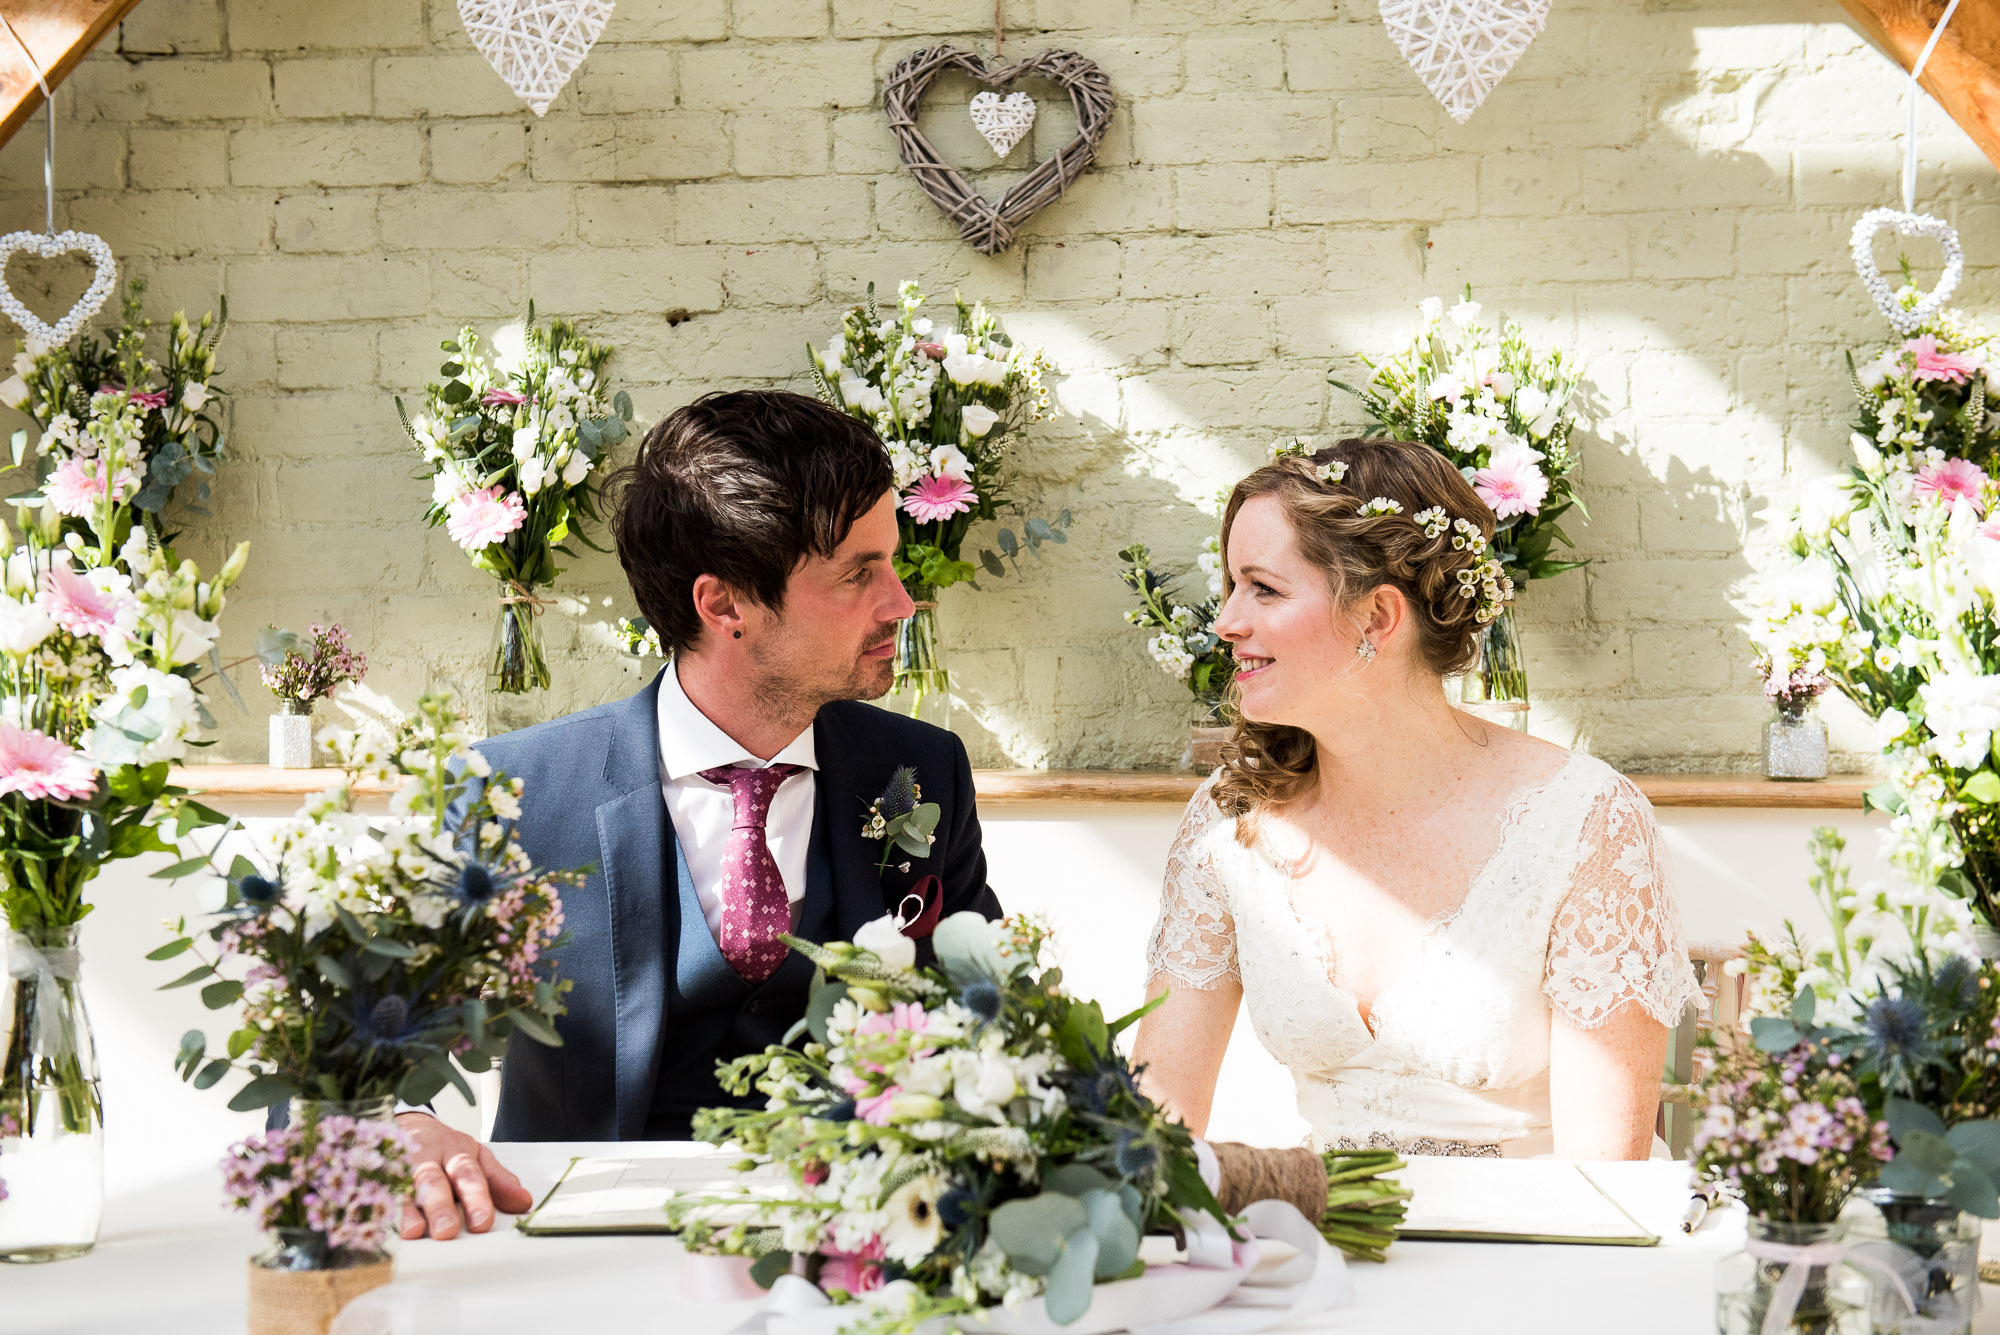 signing the register surrounded by flowers